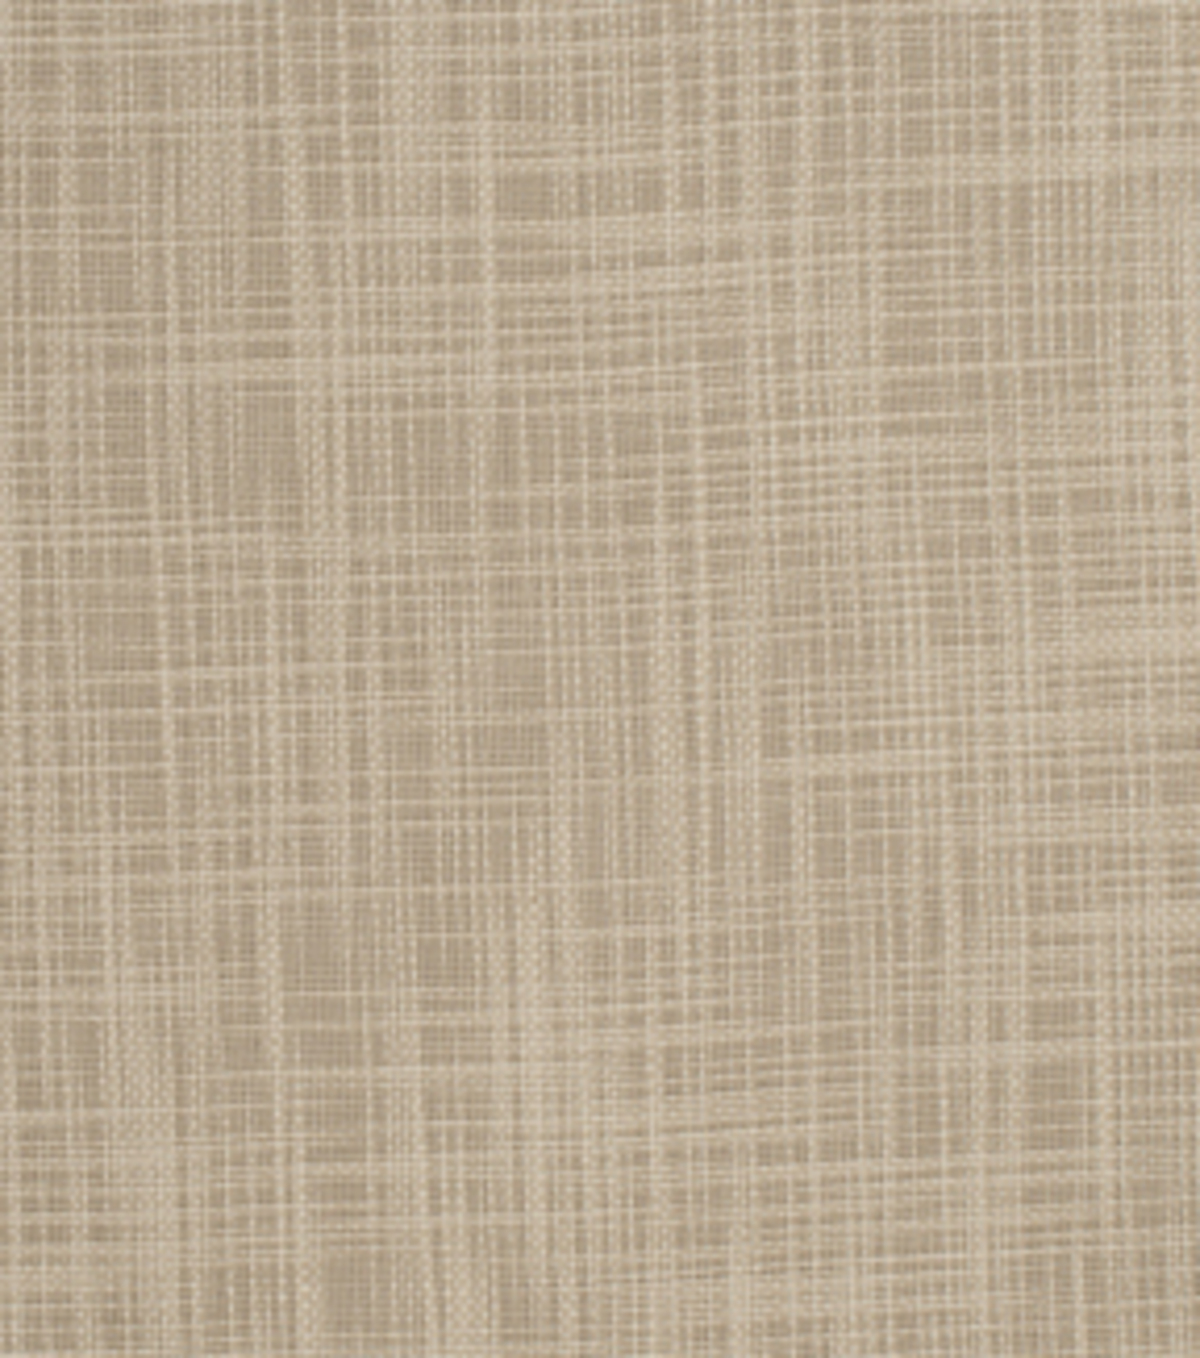 Home Decor 8\u0022x8\u0022 Fabric Swatch-Eaton Square Bankroll Buff